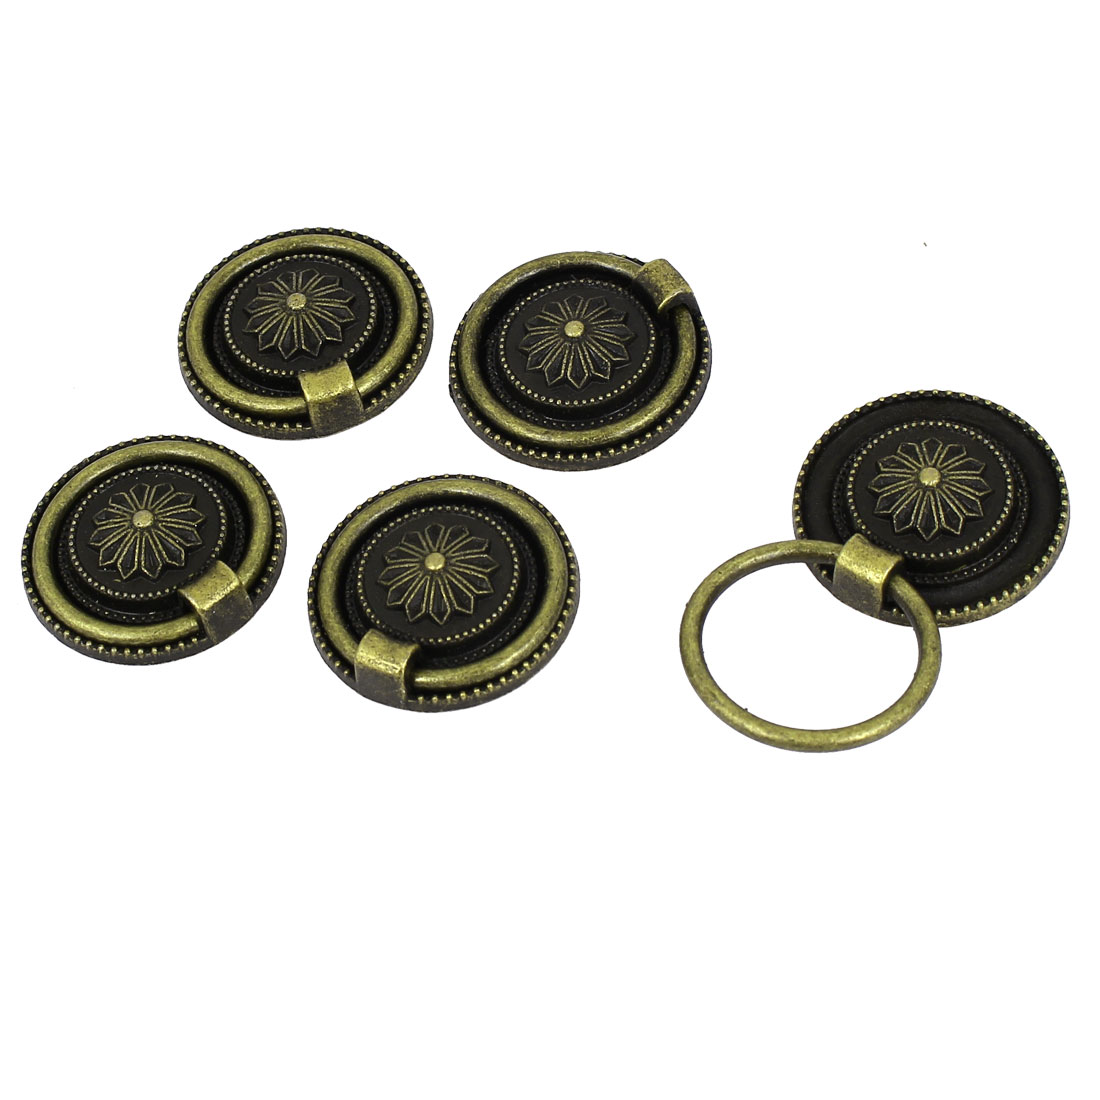 30mm Dia Door Drawer Antique Style Pull Handle Bronze Tone 5pcs